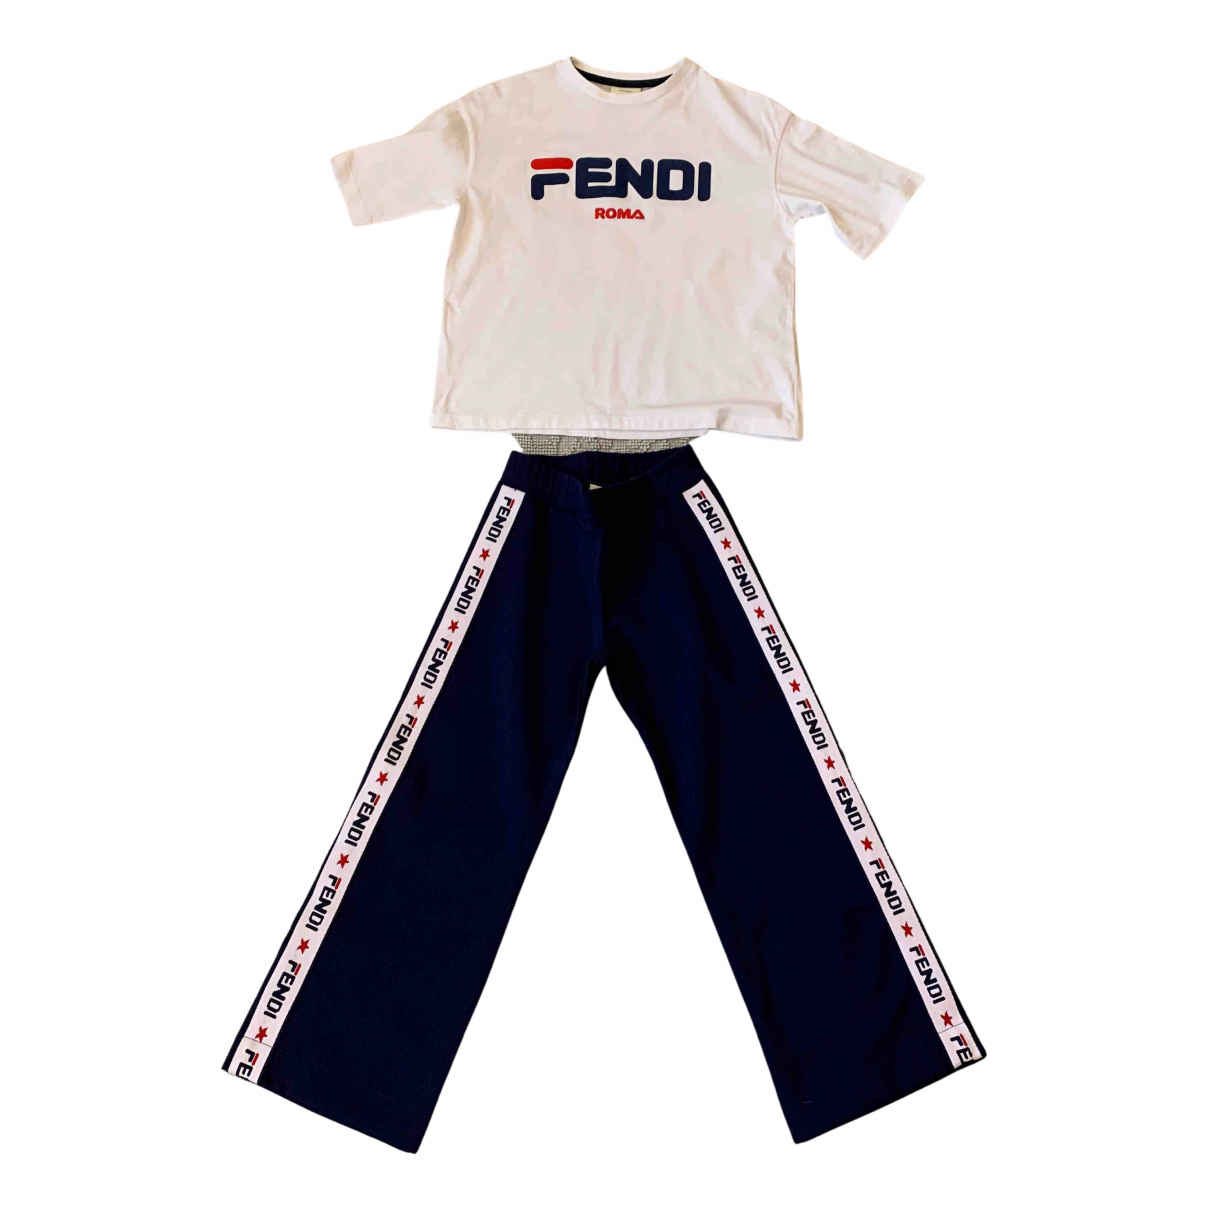 Fendi N Outfits for Kids 8 years - up to 128cm FR